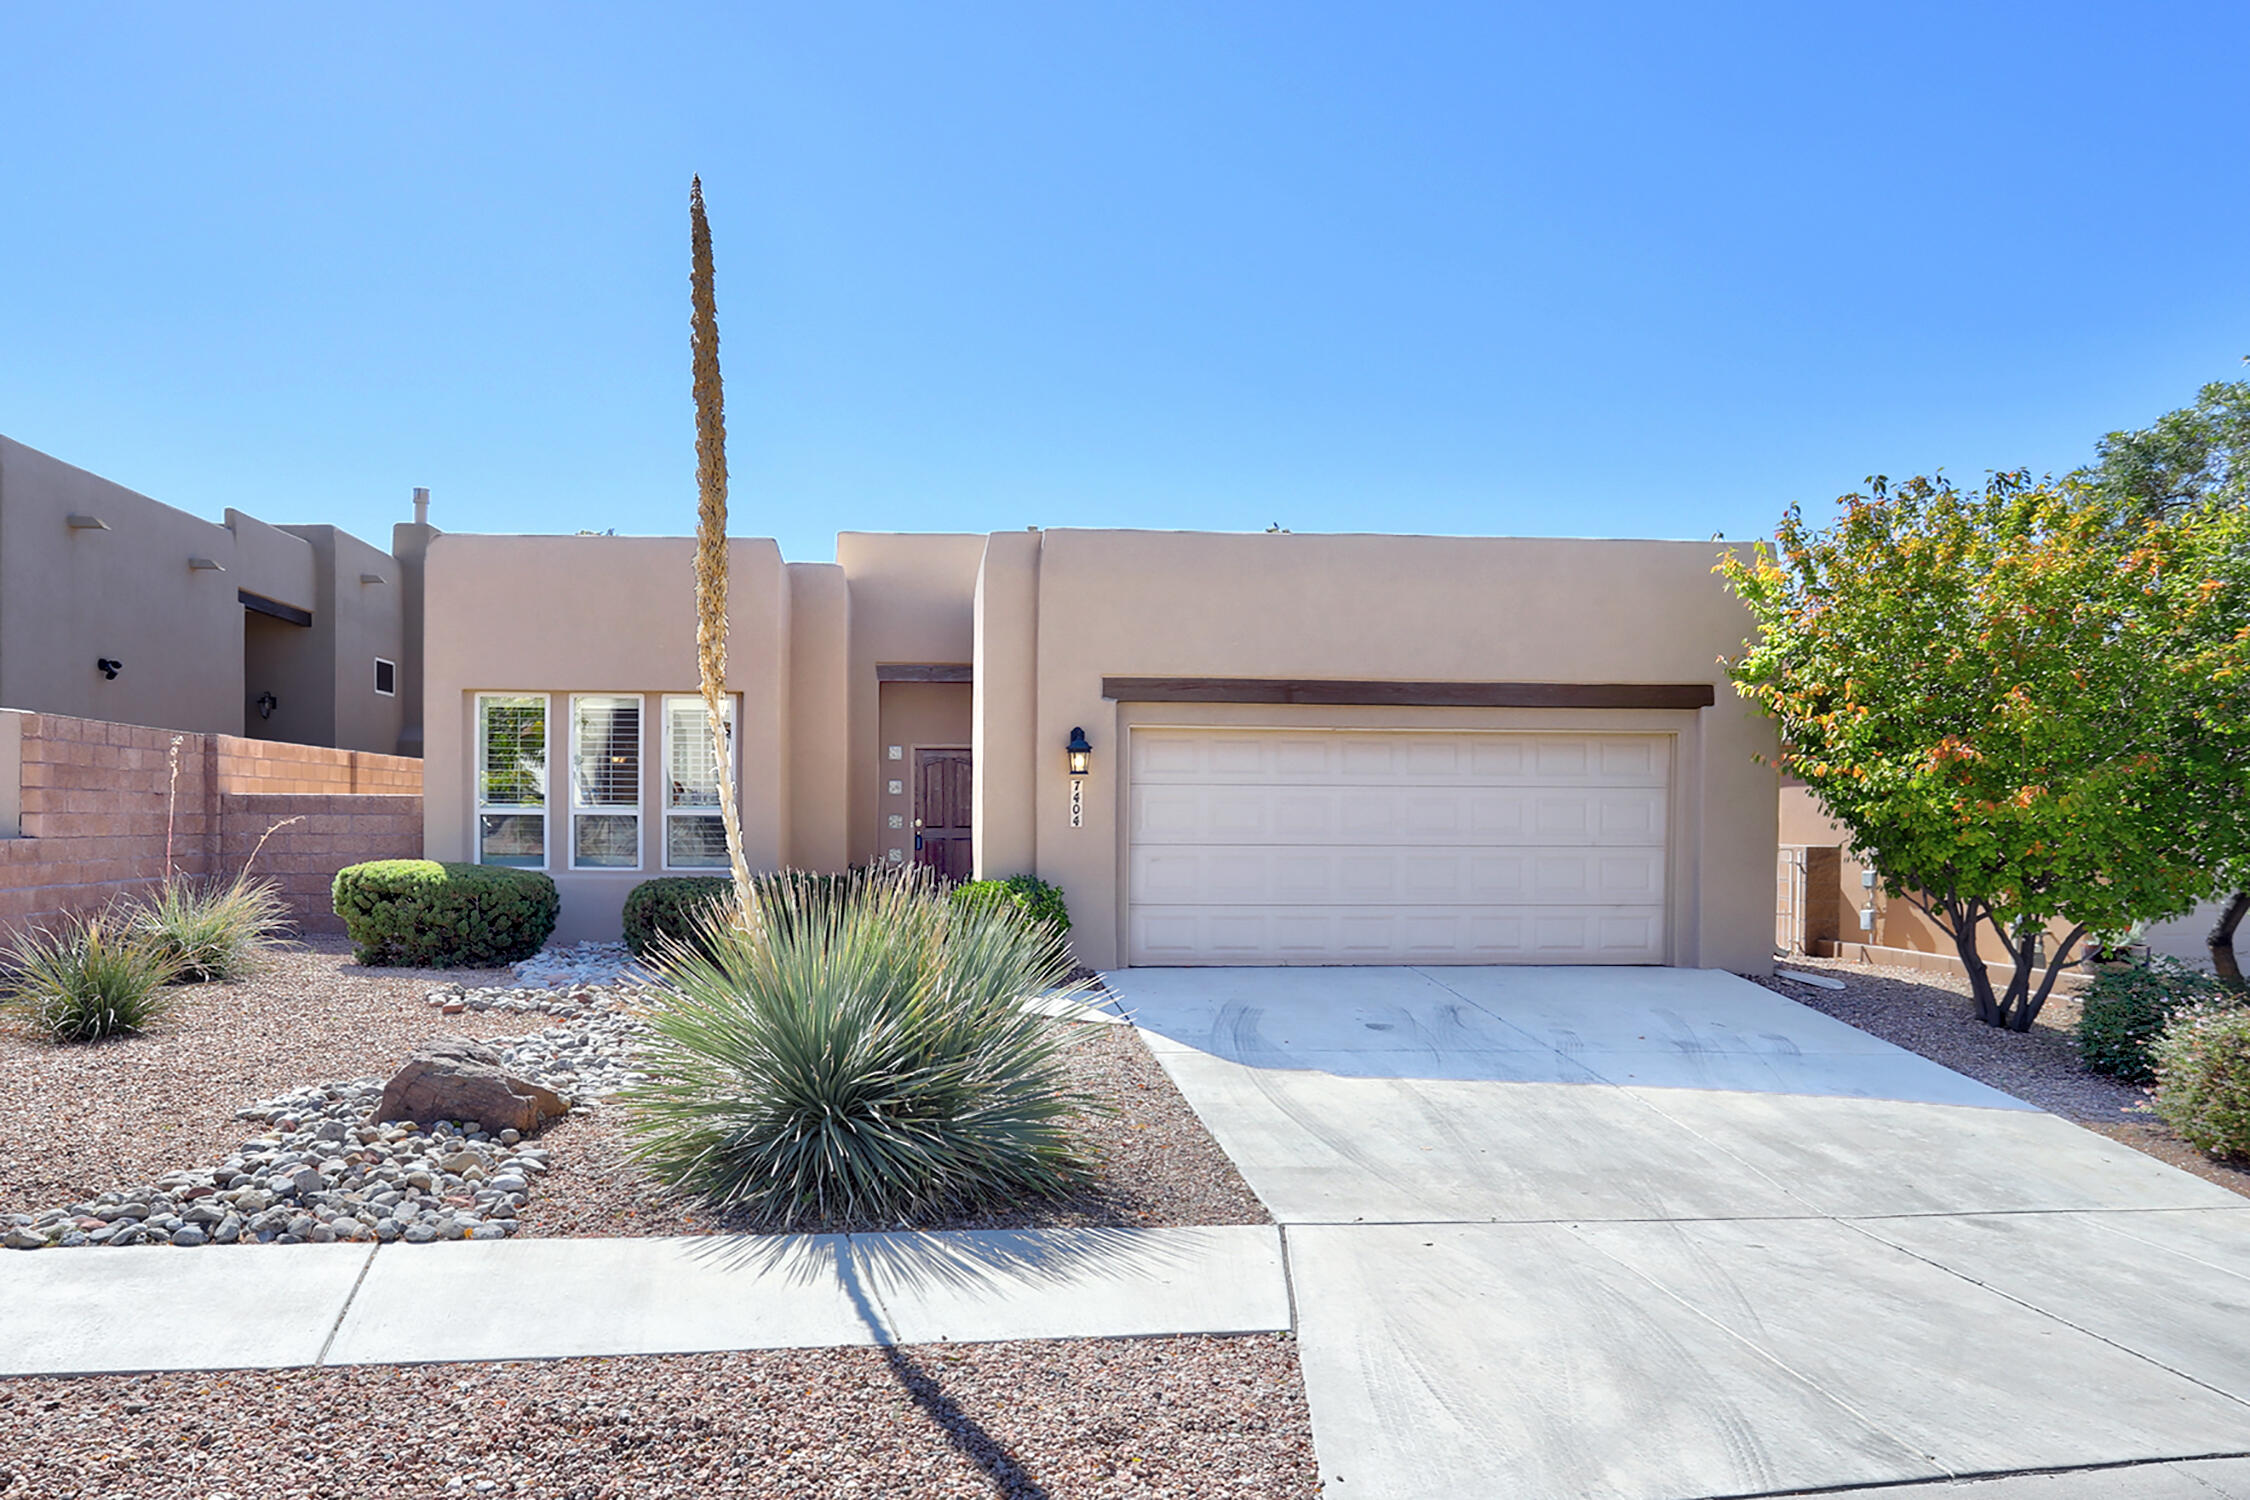 A one story home in gated Desert Ridge Trails community was built by Scott Patrick. This home is where Pueblo style meets contemporary with raised ceilings, & geometric cut out accents. Freshly painted in a modern neutral tone with clear story windows & sky lights bathes this home in light. Large kitchen with ample counter & cabinet space, with an island, pantry & breakfast area. Generous size great room has a rounded wall of windows, a fireplace, & is open to the dining room perfect for the holidays. The Primary suite oasis has recessed ceilings, double sinks, garden tub, separate shower, & huge walk in closet. Back yard sanctuary with covered patio, flag stone paths & mature shade trees. Newer stucco, TPO roof & tankless hot water heater. Located in North Star & La Cueva school districts